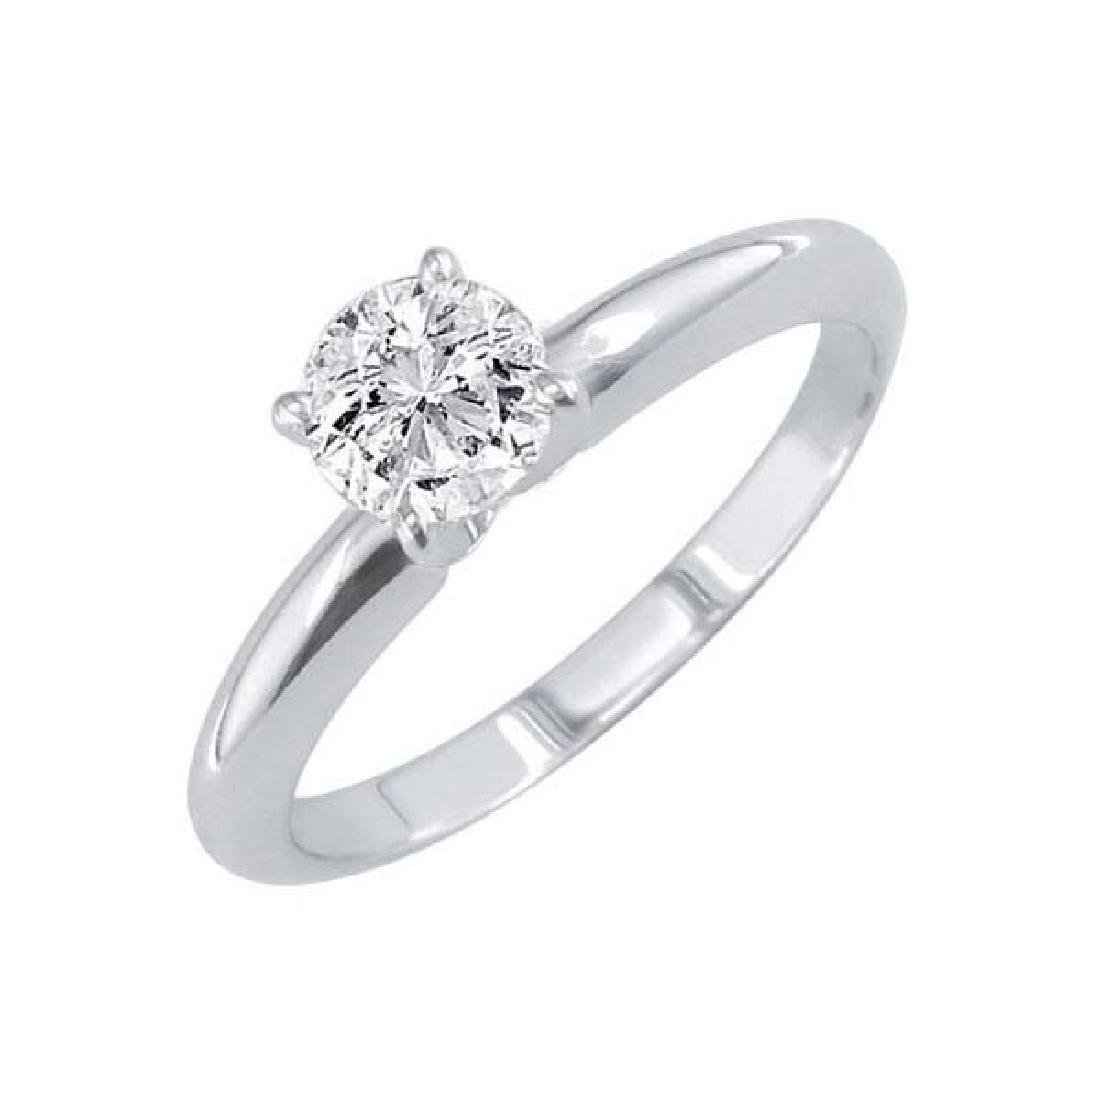 Certified 0.58 CTW Round Diamond Solitaire 14k Ring E/I